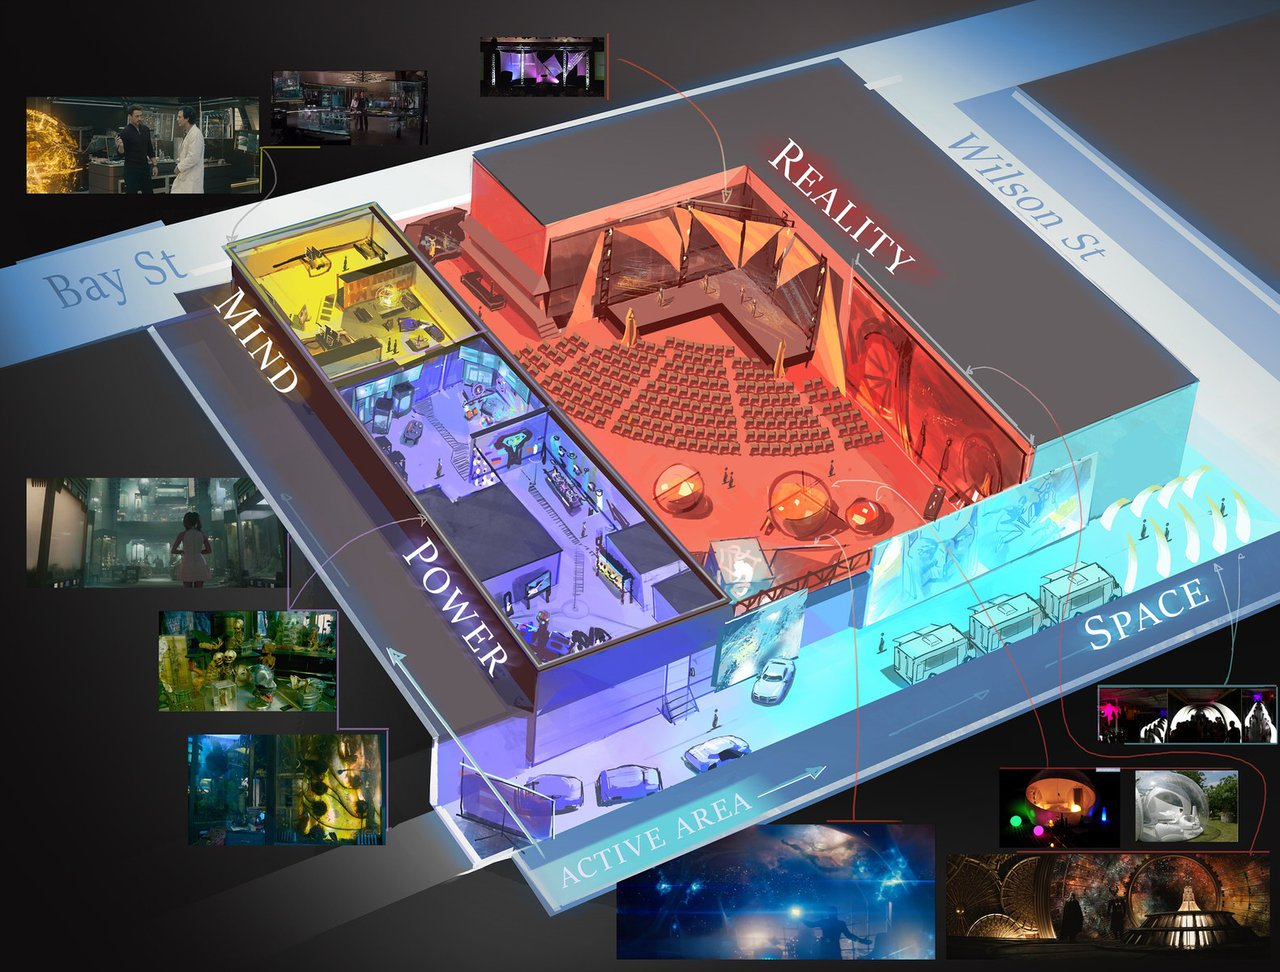 Science of the Marvel Cinematic Universe photo MysteriousMarvel_schematic_v1-2_flat.jpg